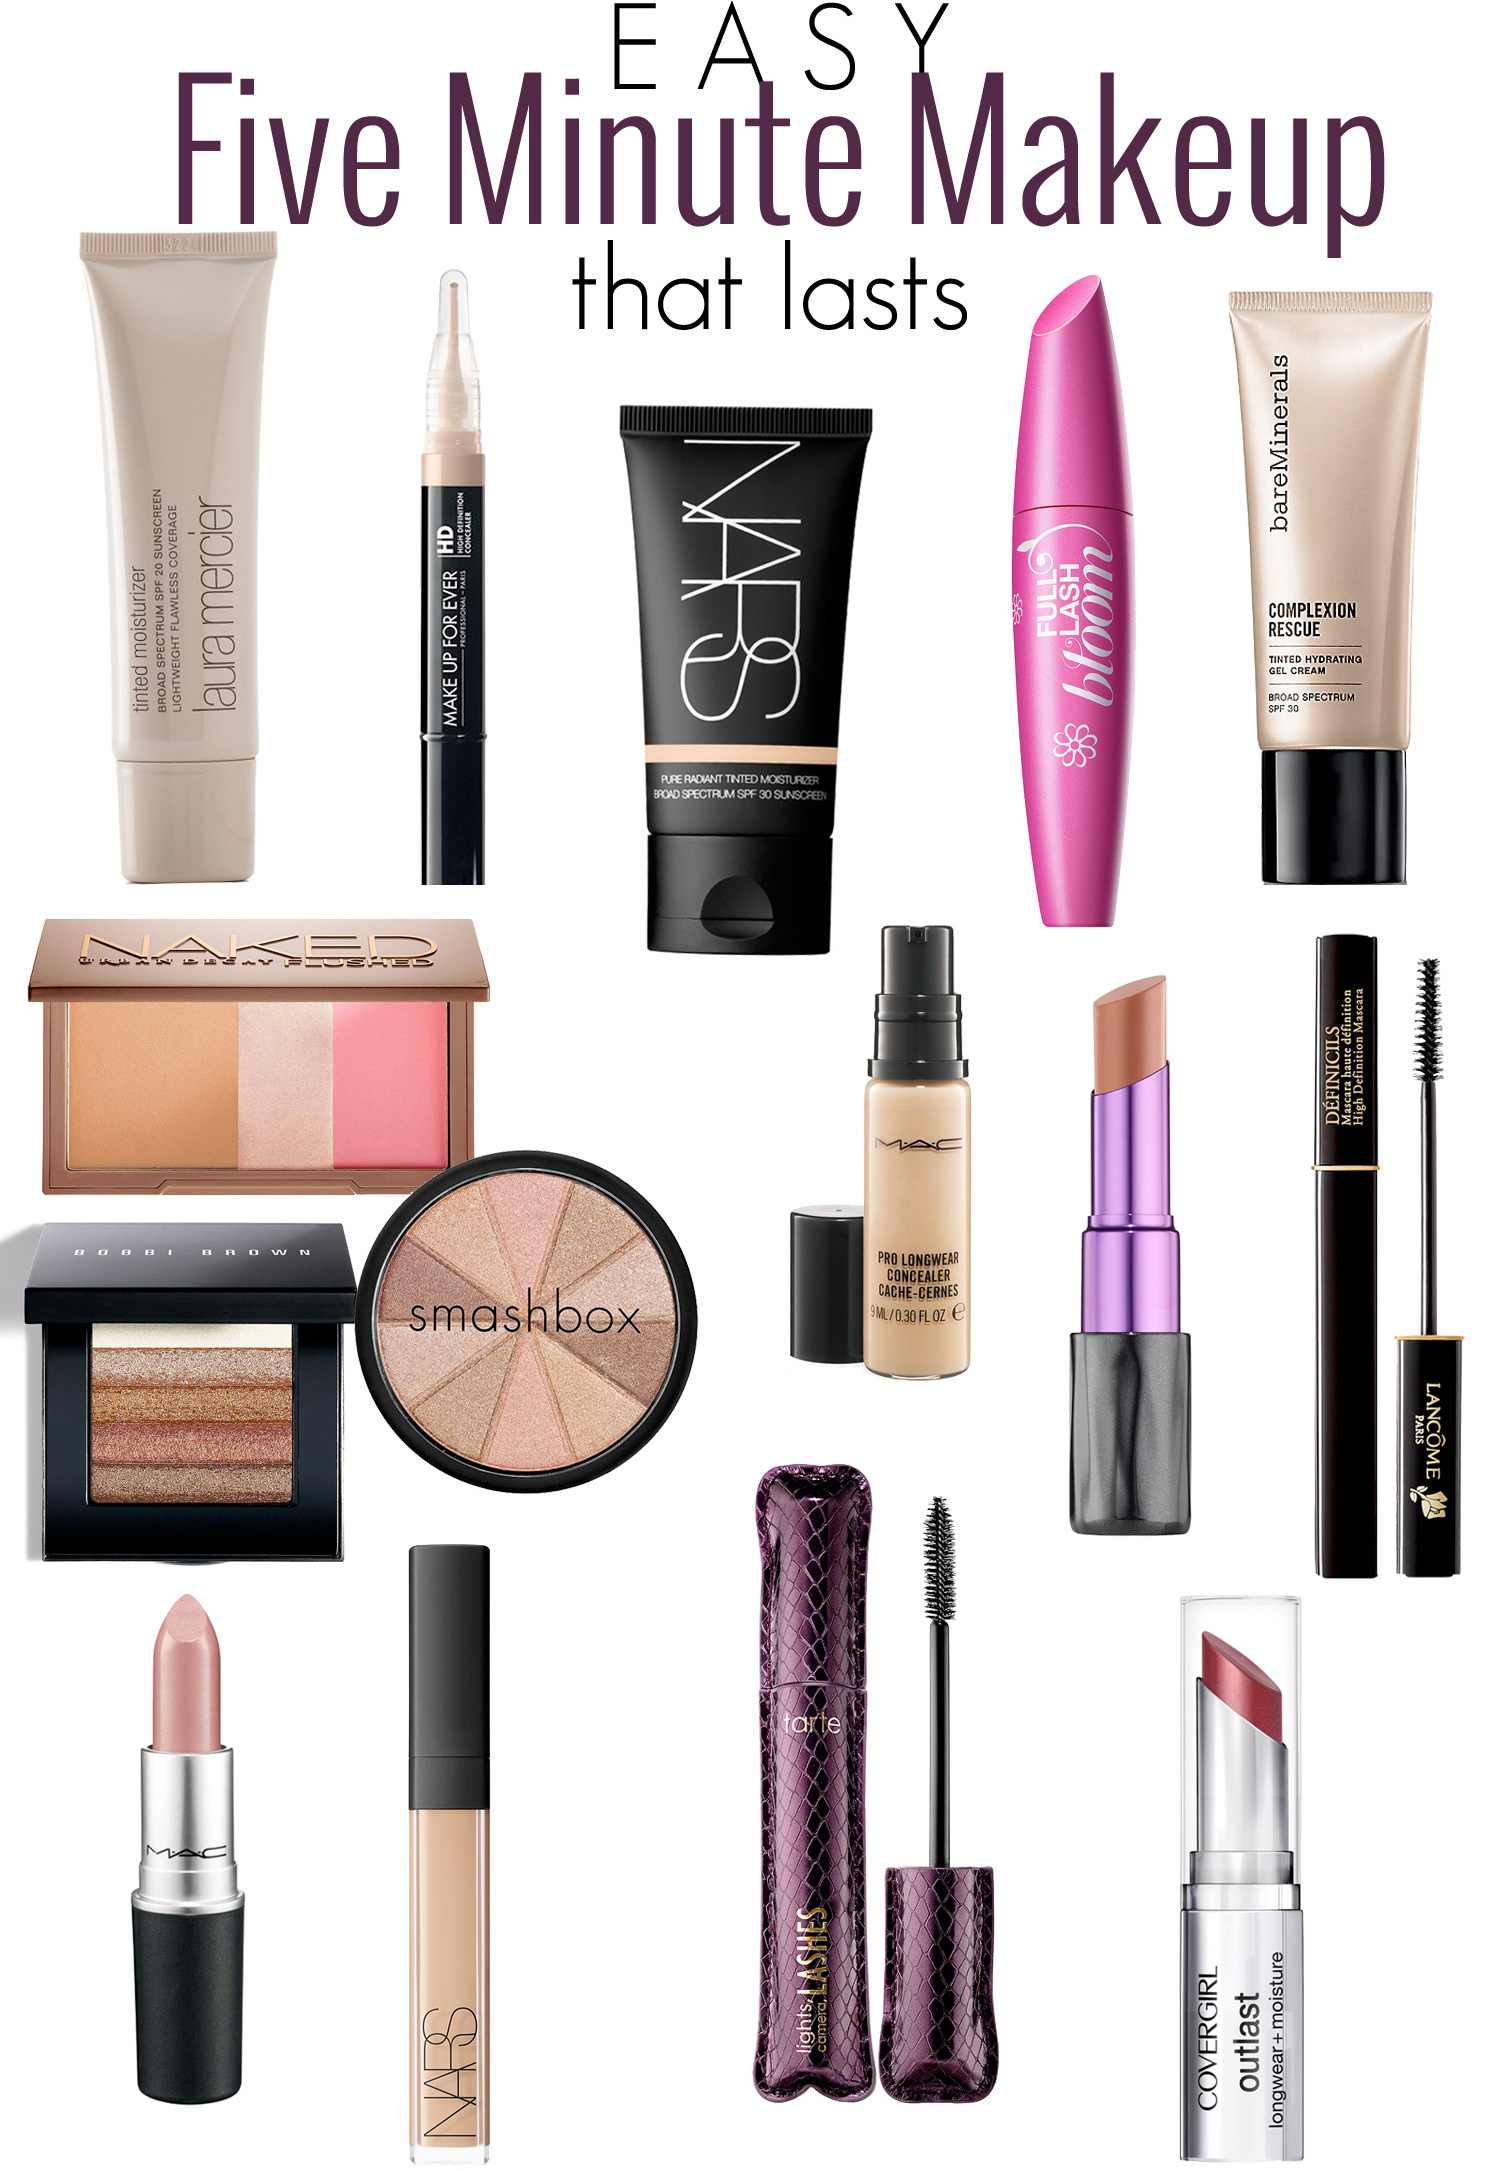 The best makeup products to use for a fast + easy 5 minute makeup routine.